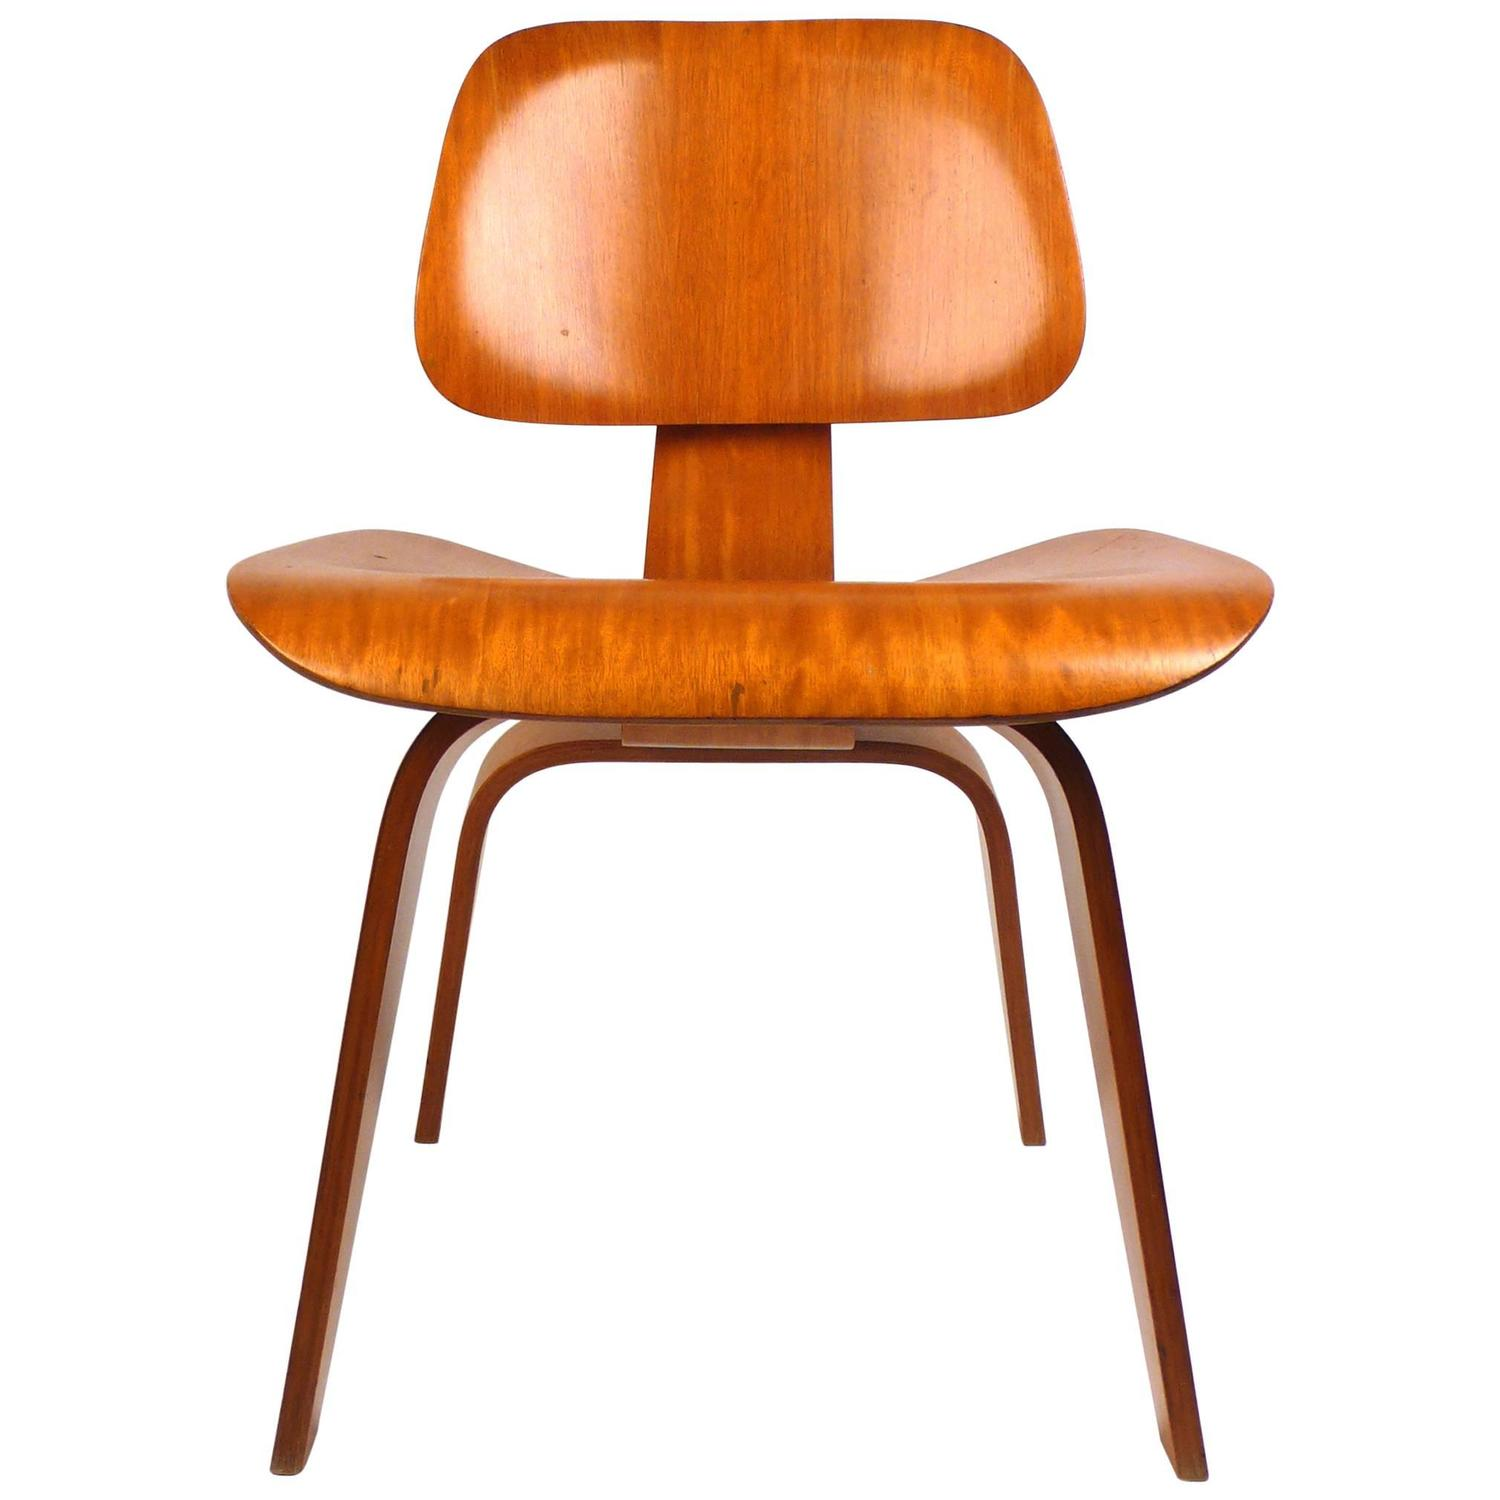 Evans Plywood Chair DCW By Charles Eames 1940s For Sale At 1stdibs